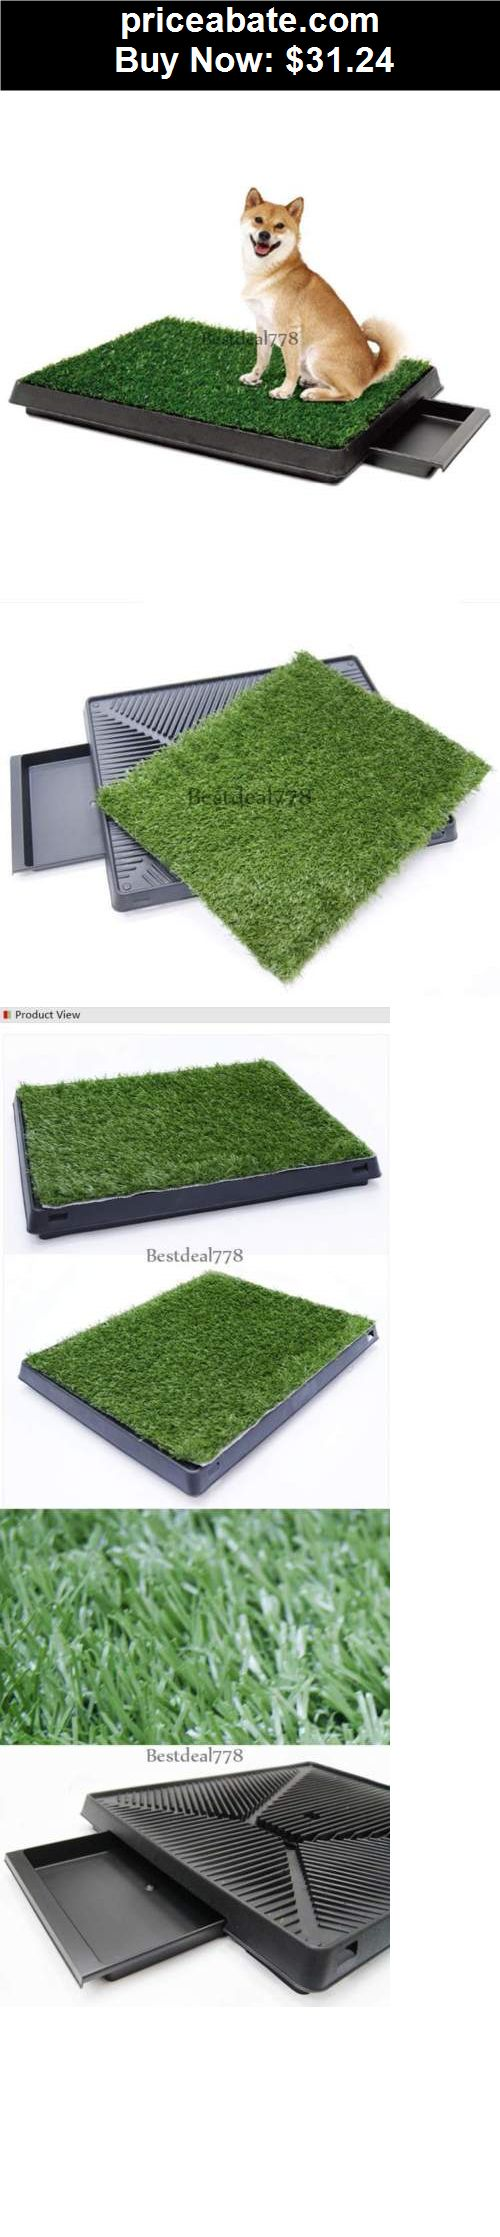 Animals-Dog: Pet Park Indoor Potty Dog Grass Mat Pad Training Petzoom Puppy Patch Patio - BUY IT NOW ONLY $31.24